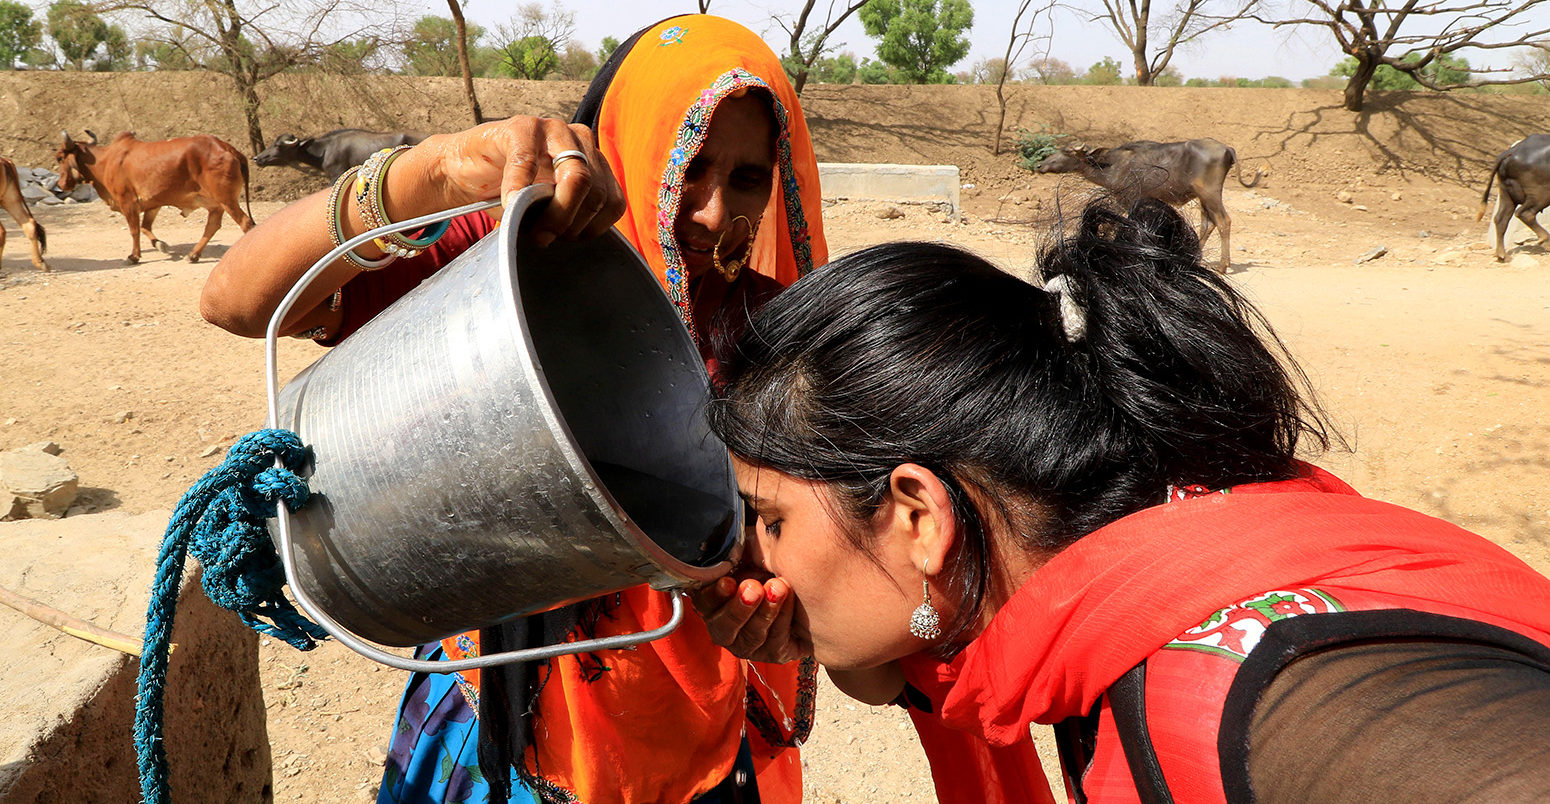 Jaipur, India. 19th May, 2016. An Indian woman quenches her thirst during the hot summer day outskirts of Jaipur, Rajasthan. Temperature records are rapidly getting shattered as North Indian states and towns are left to sizzle under extreme heat condition